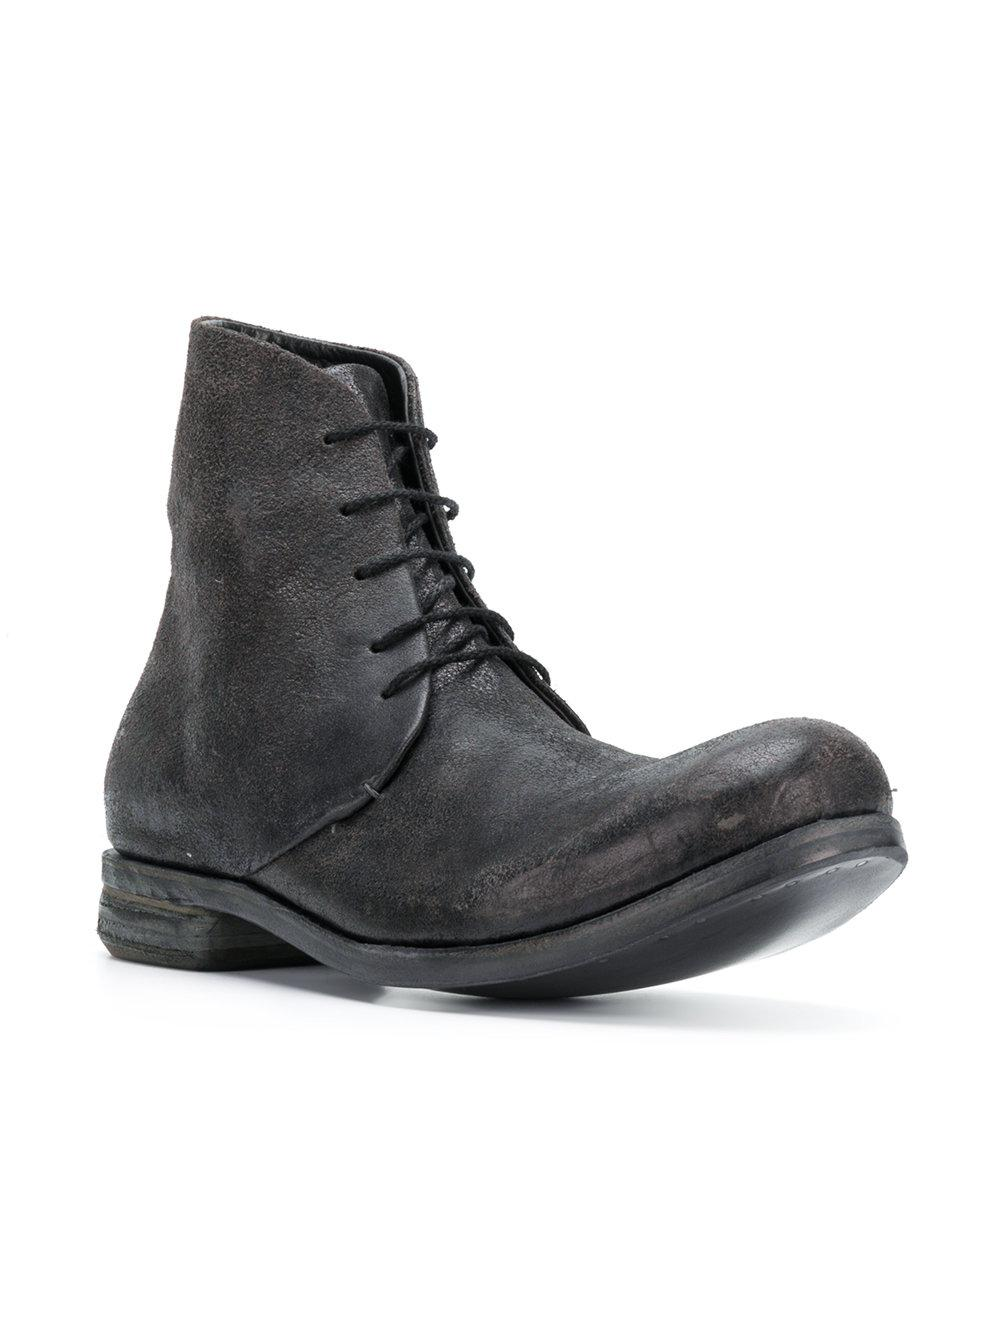 A Diciannoveventitre D3 destroyed boots outlet low shipping fee for sale cheap authentic outlet fashion Style qTIDJ